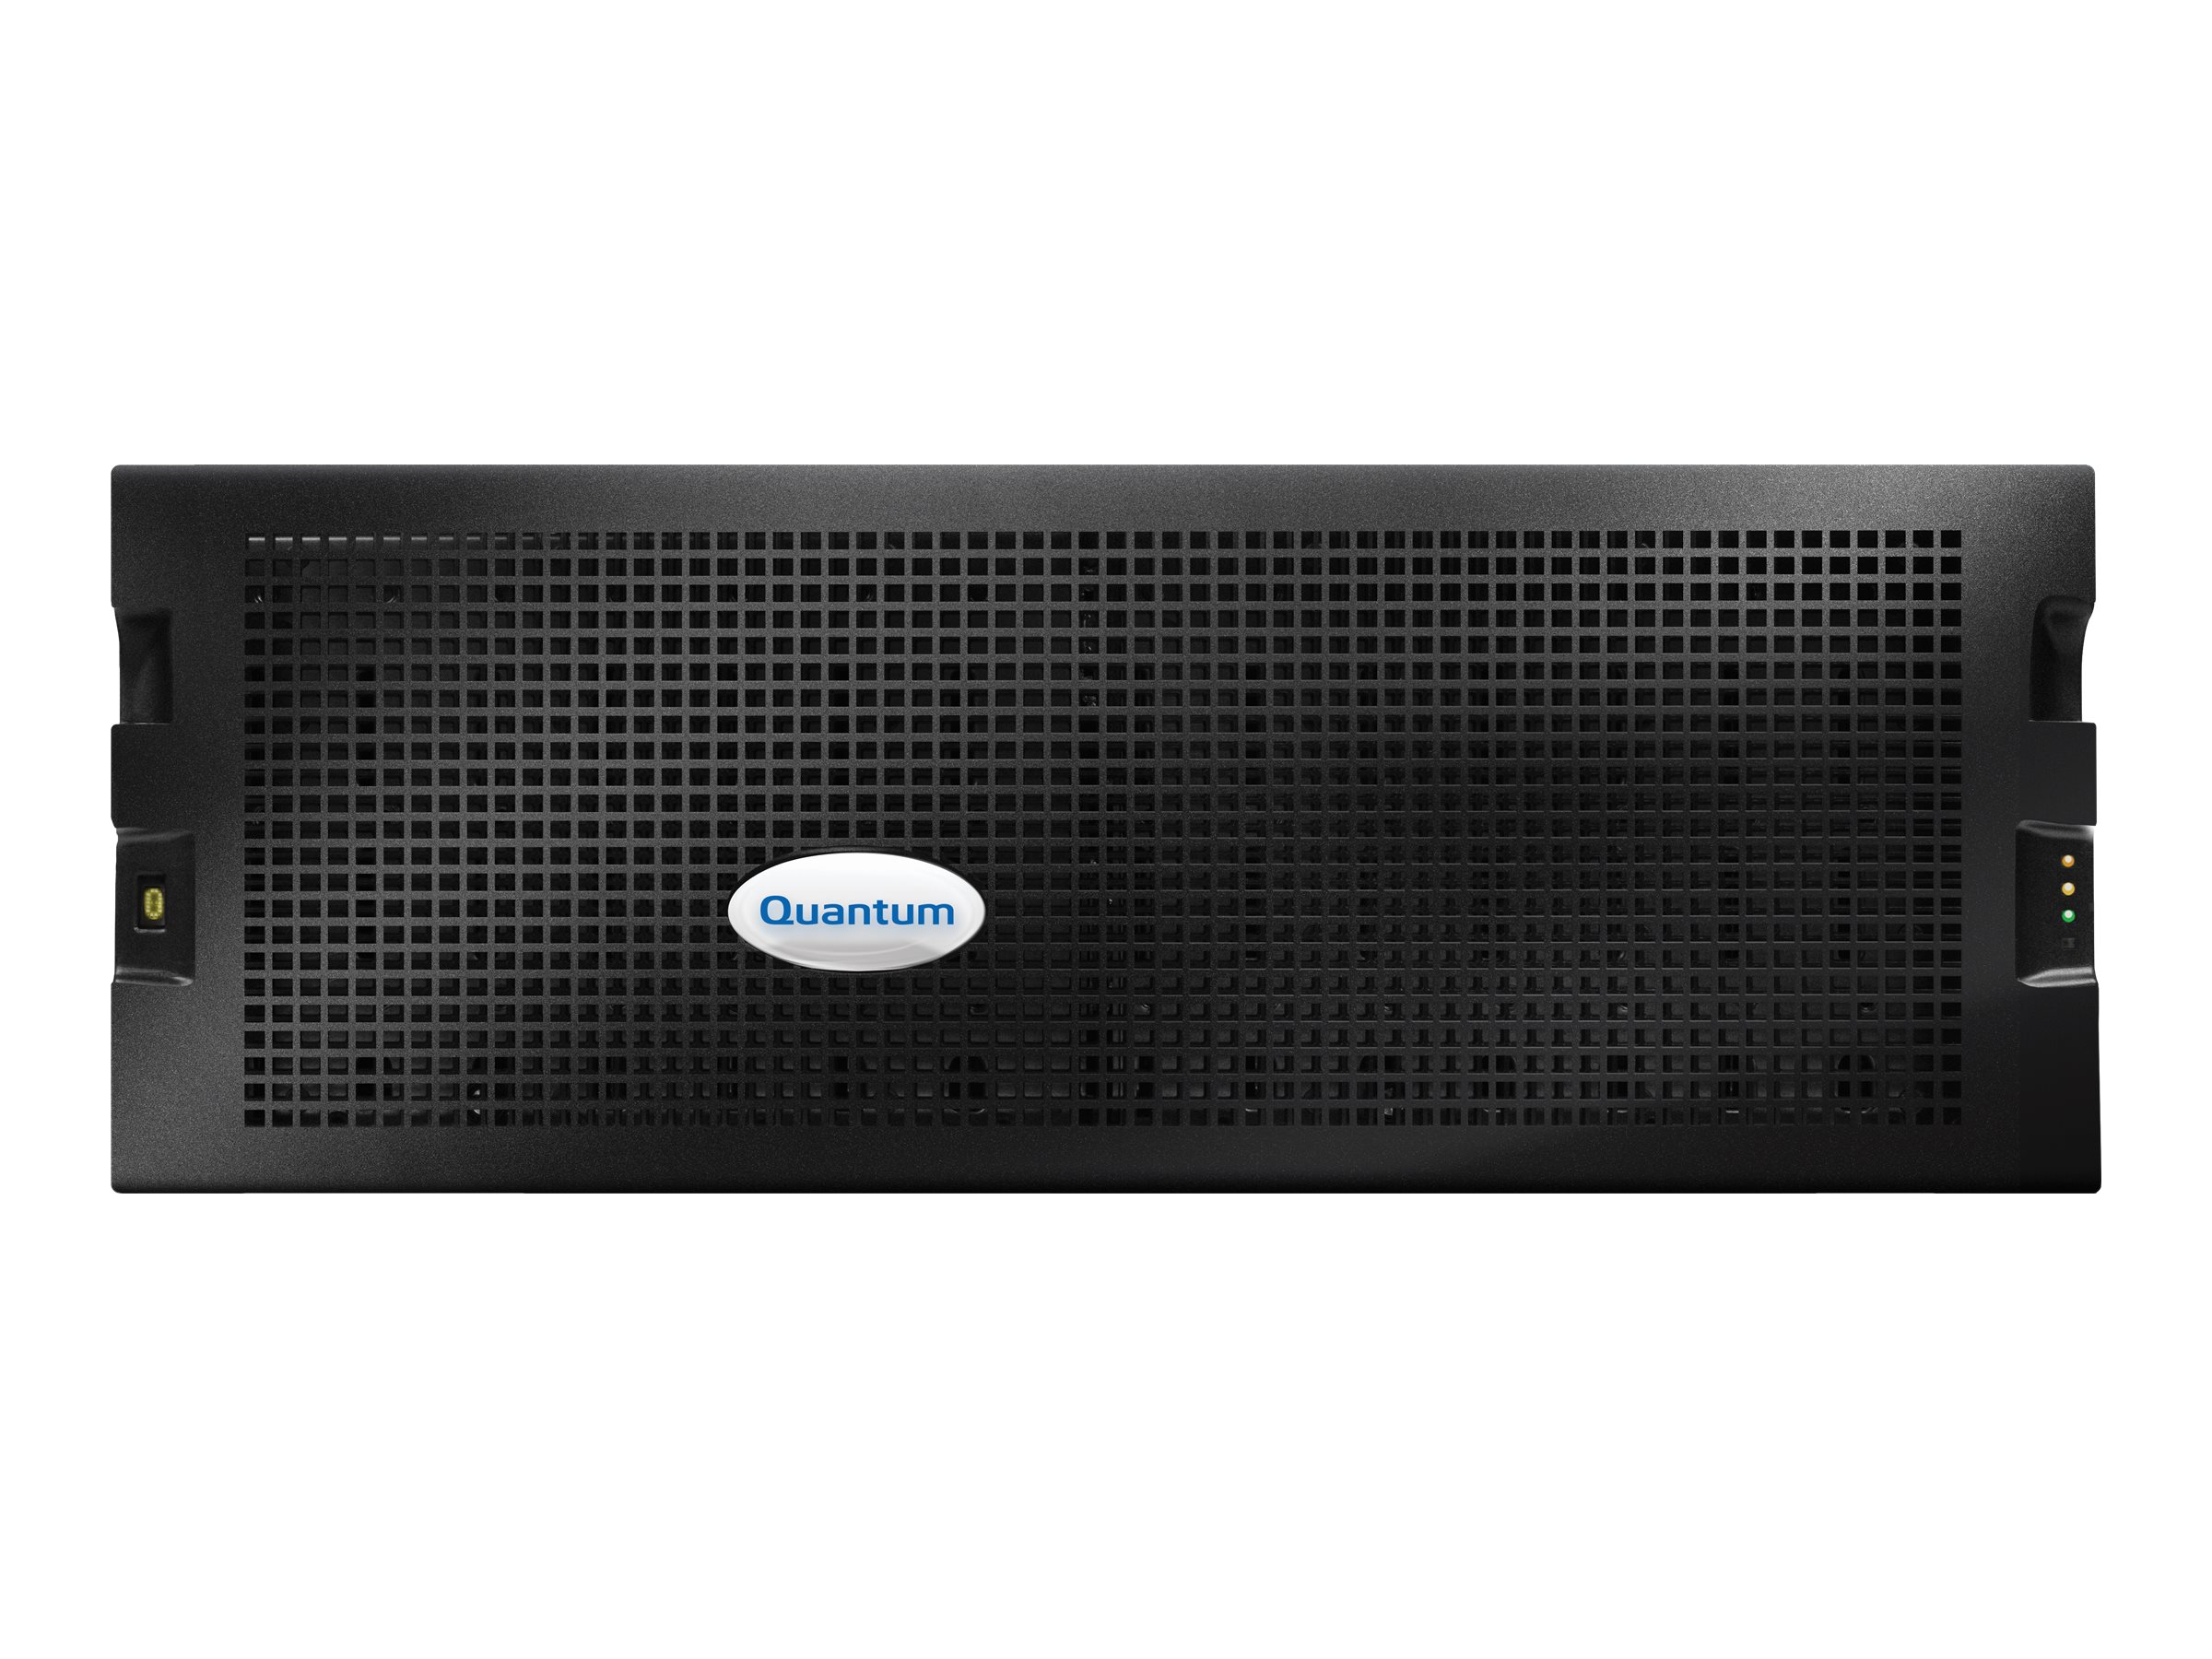 Quantum 168TB StorNext QXS-5600 RAID Storage Solution, BQY56-BSYS-168C